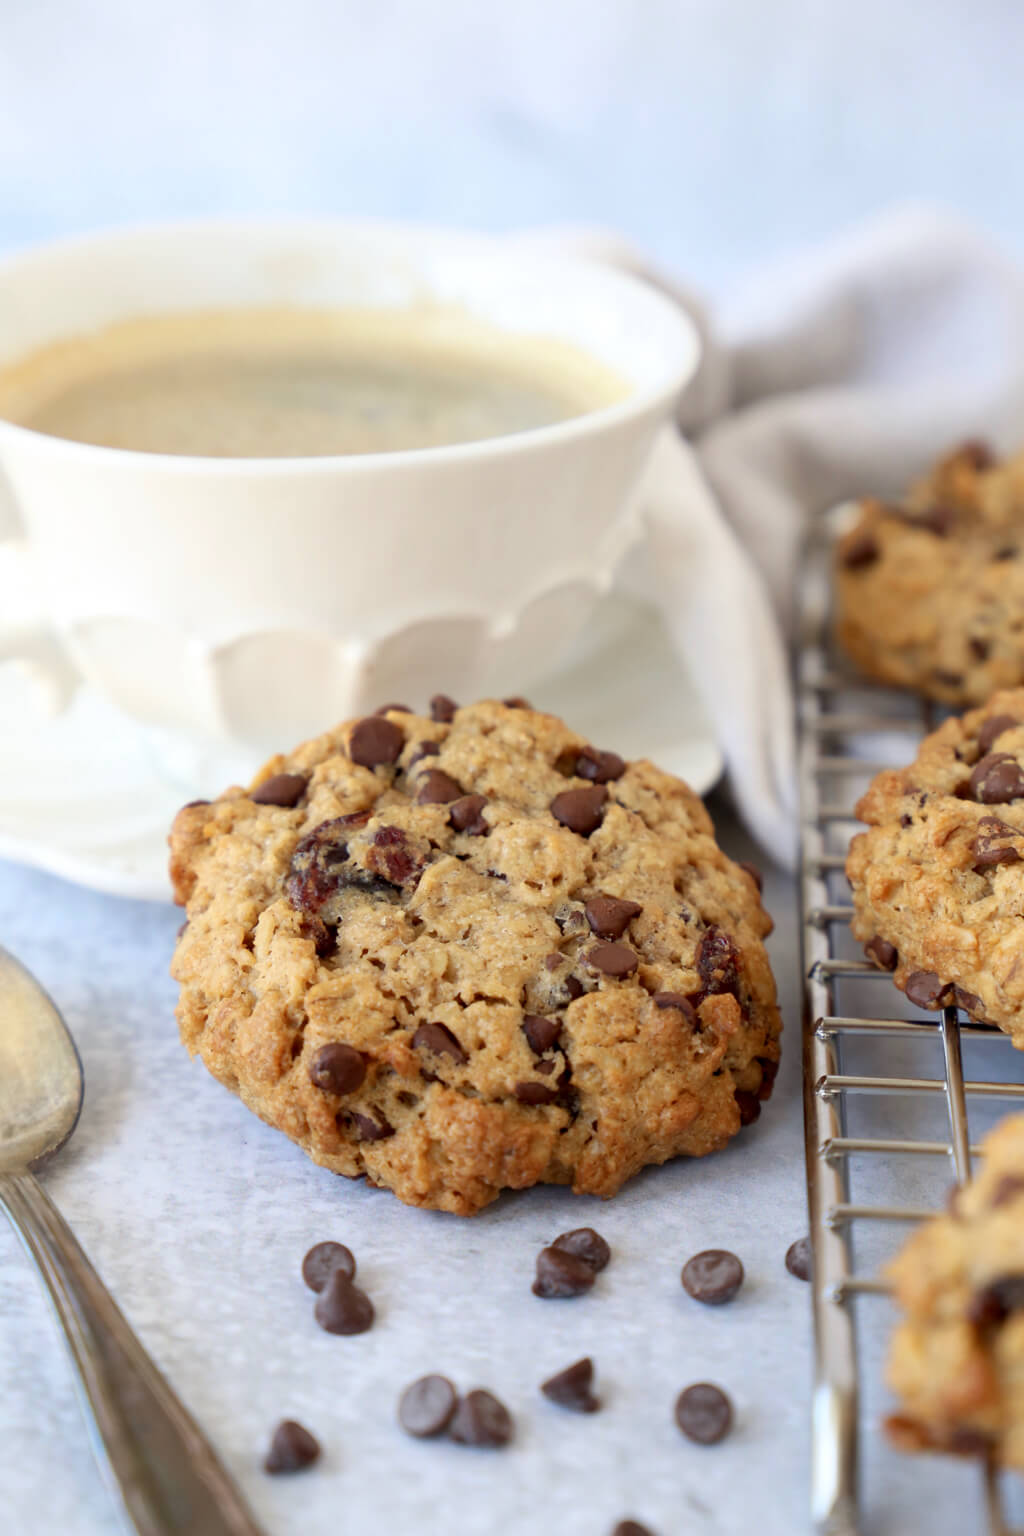 one breakfast cookie resting on the edge of a coffee cup